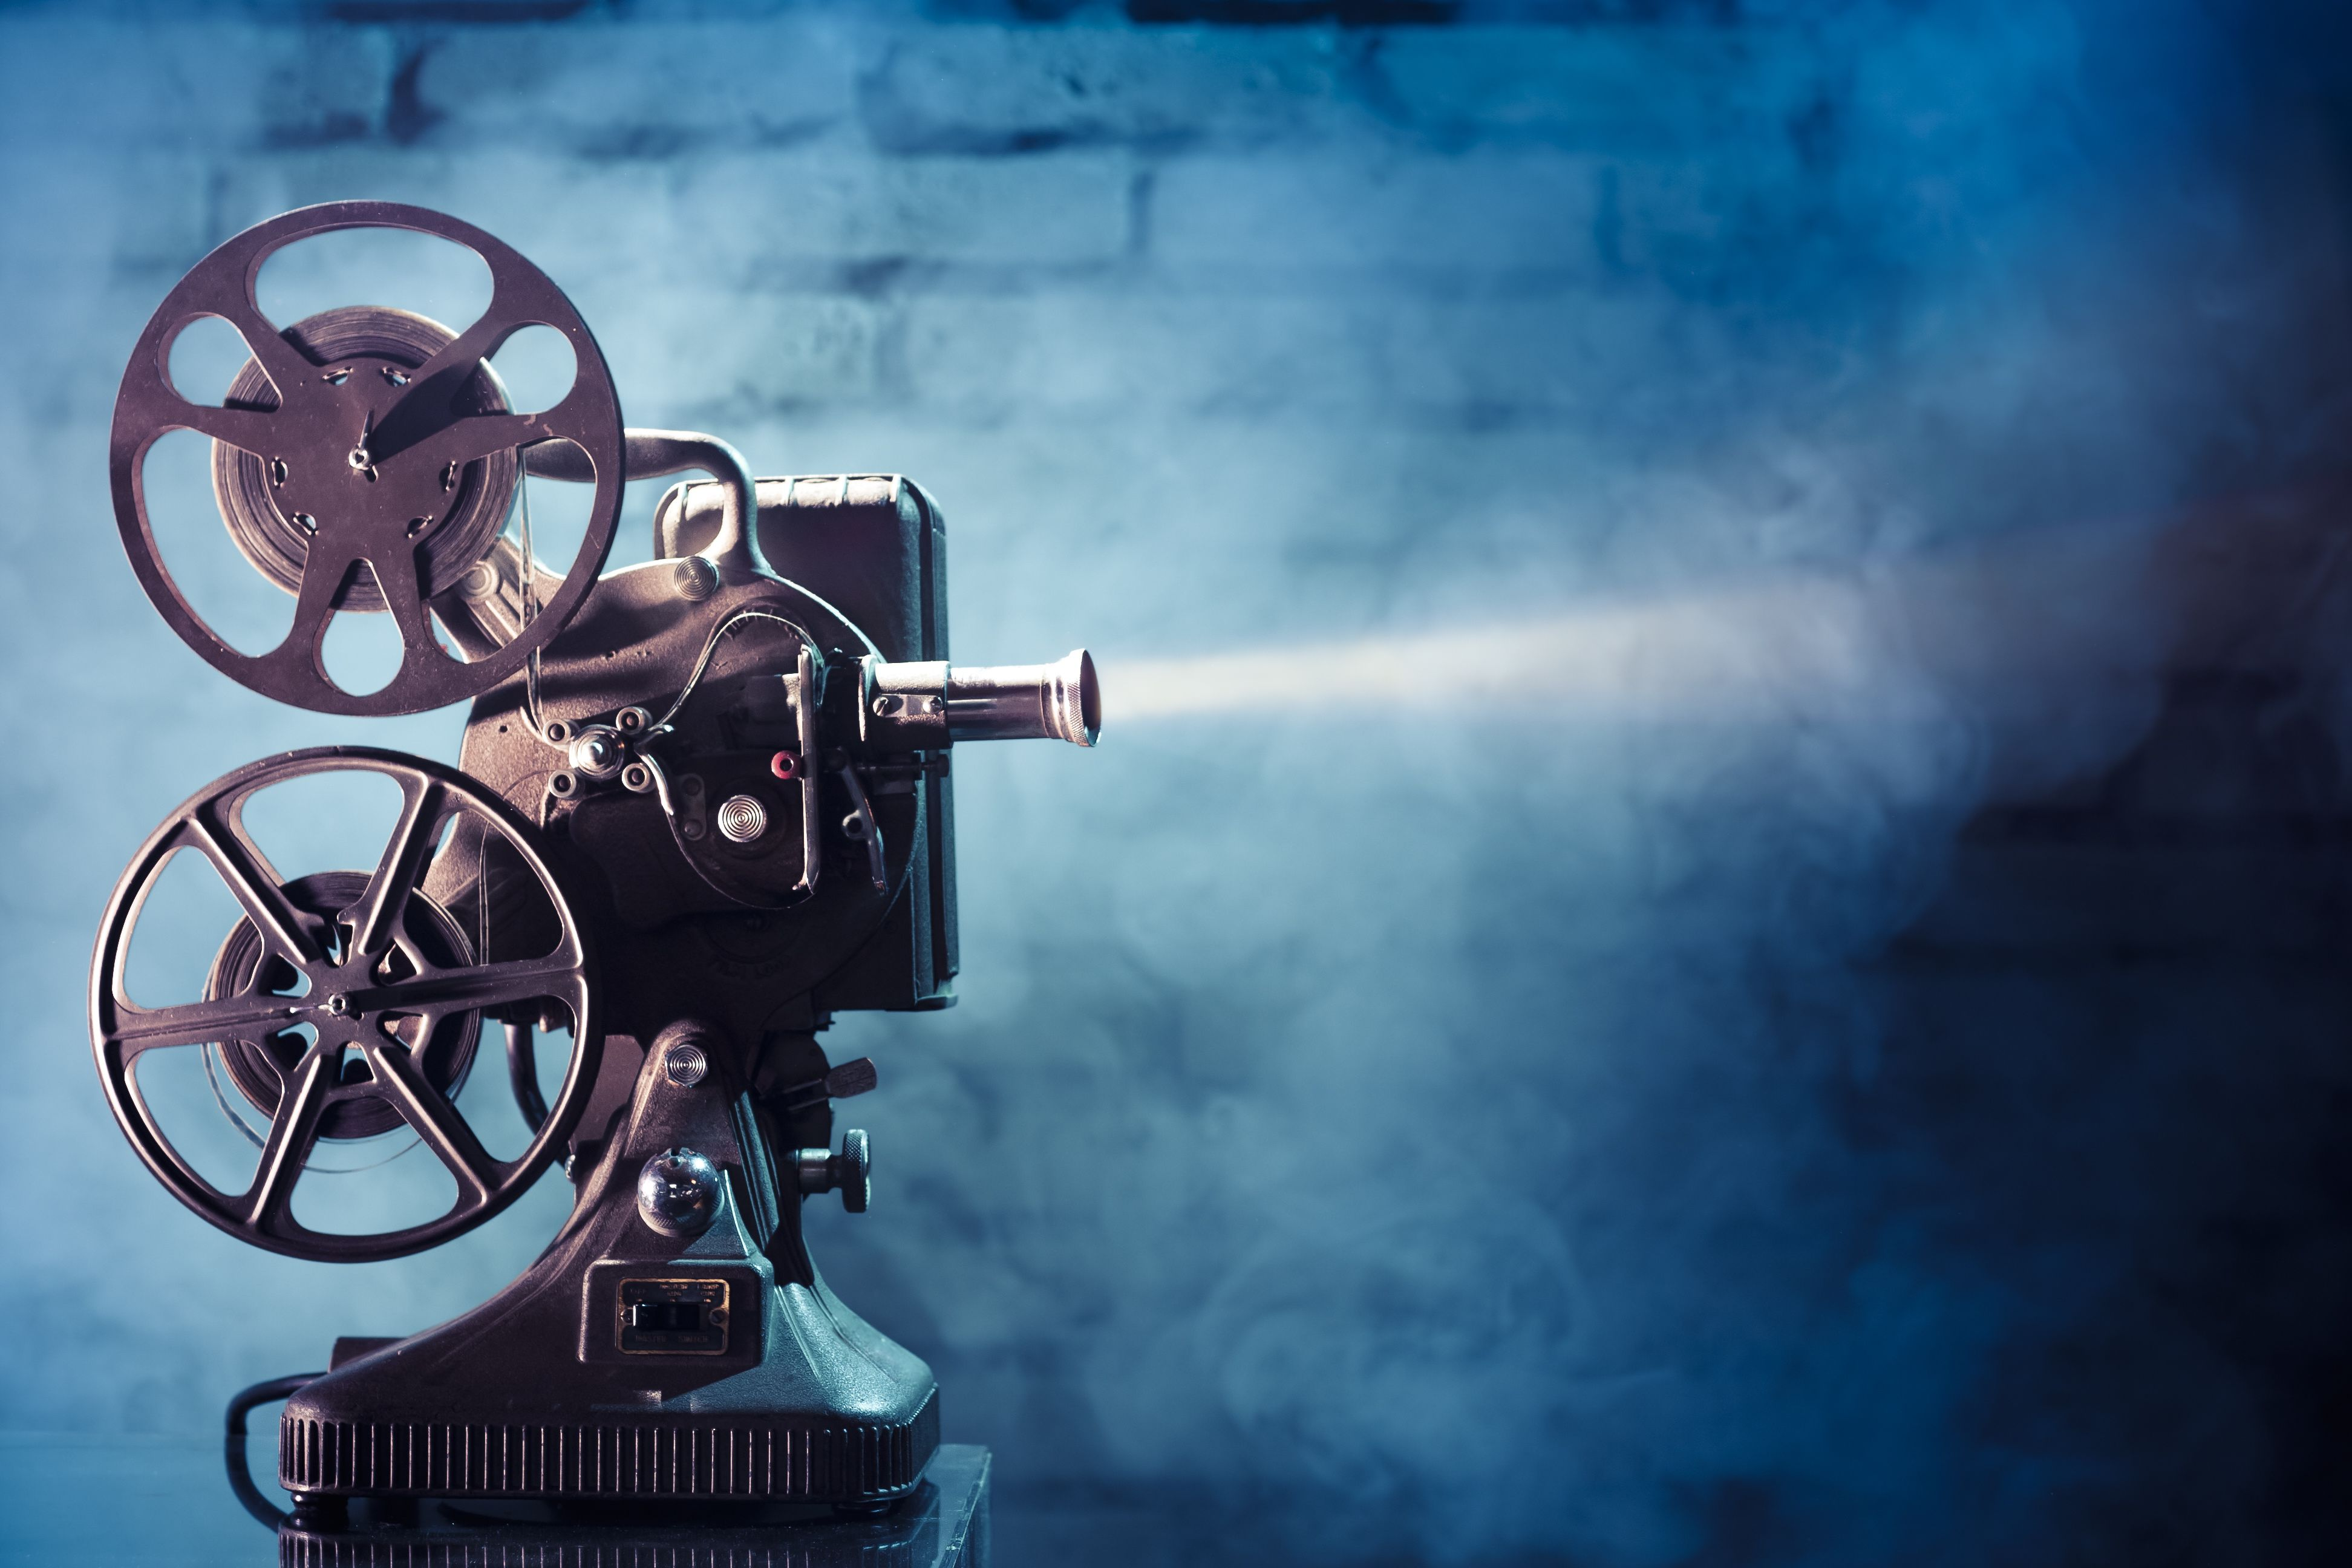 The Therapy of Cinema